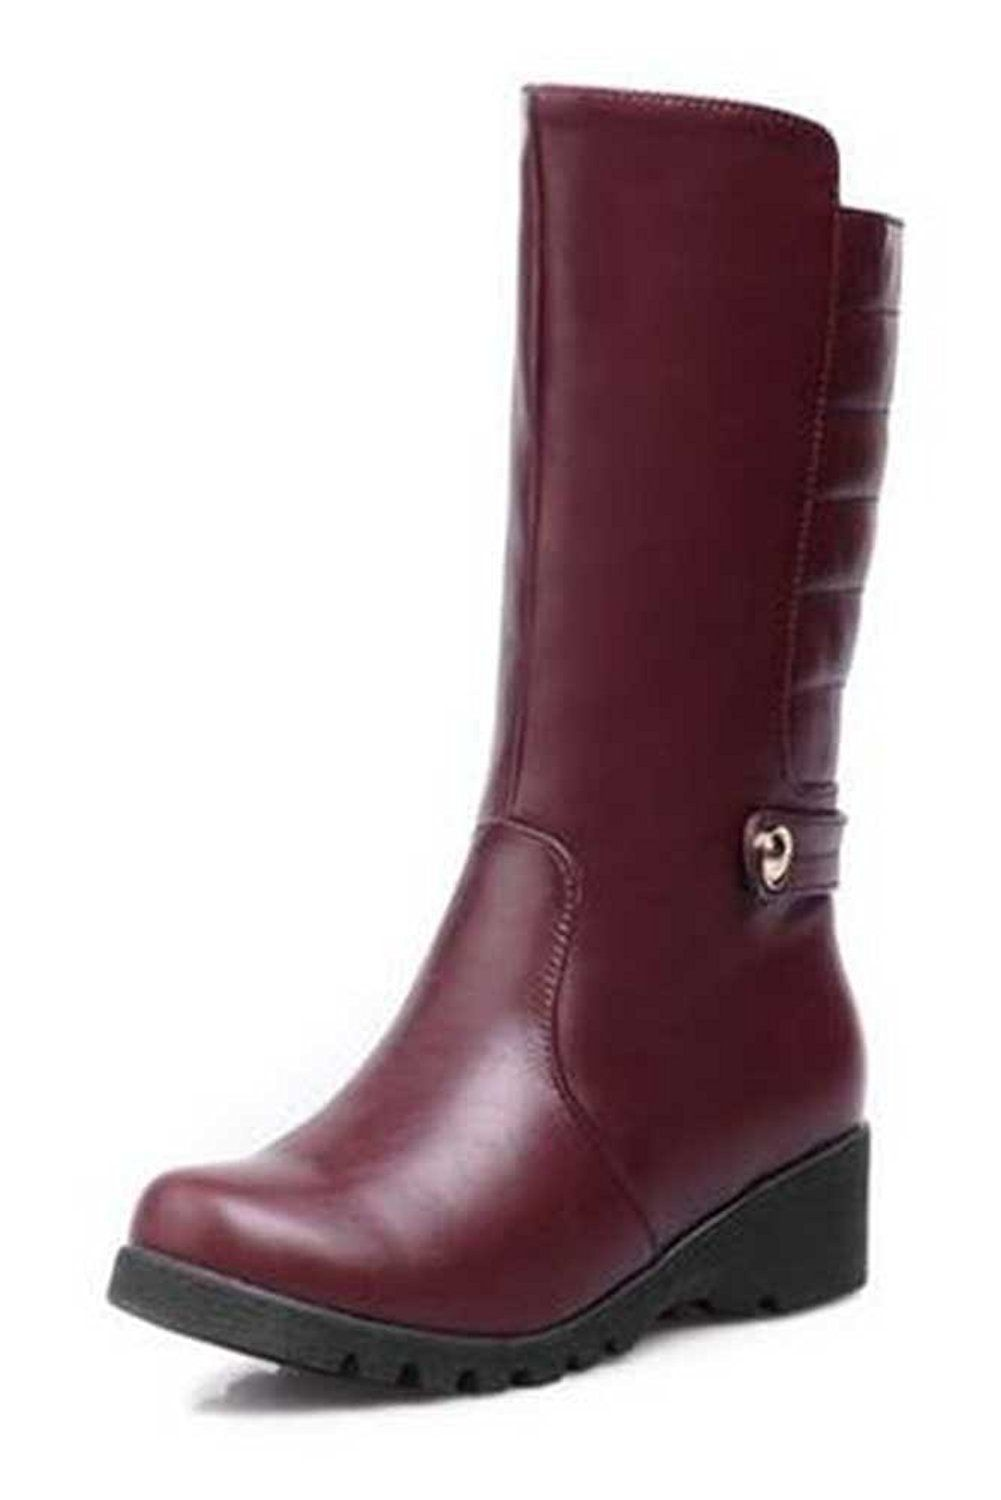 CHFSO Women's Winter Warm Solid Round Toe Pull On Low Heel Mid Cuff Boots -- Details can be found by clicking on the image.